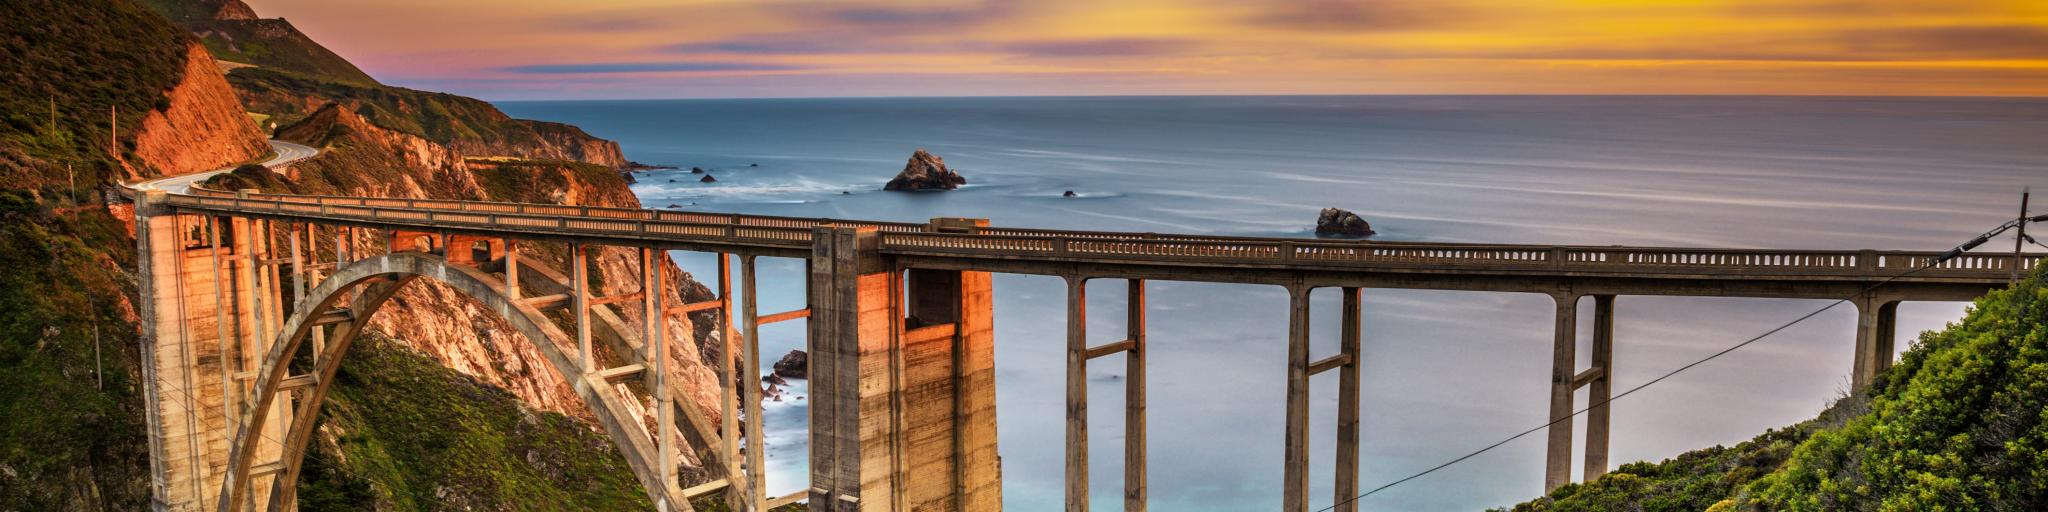 Bixby Creek Bridge is one of the highlights of Highway 1 that runs through the Big Sur in California.